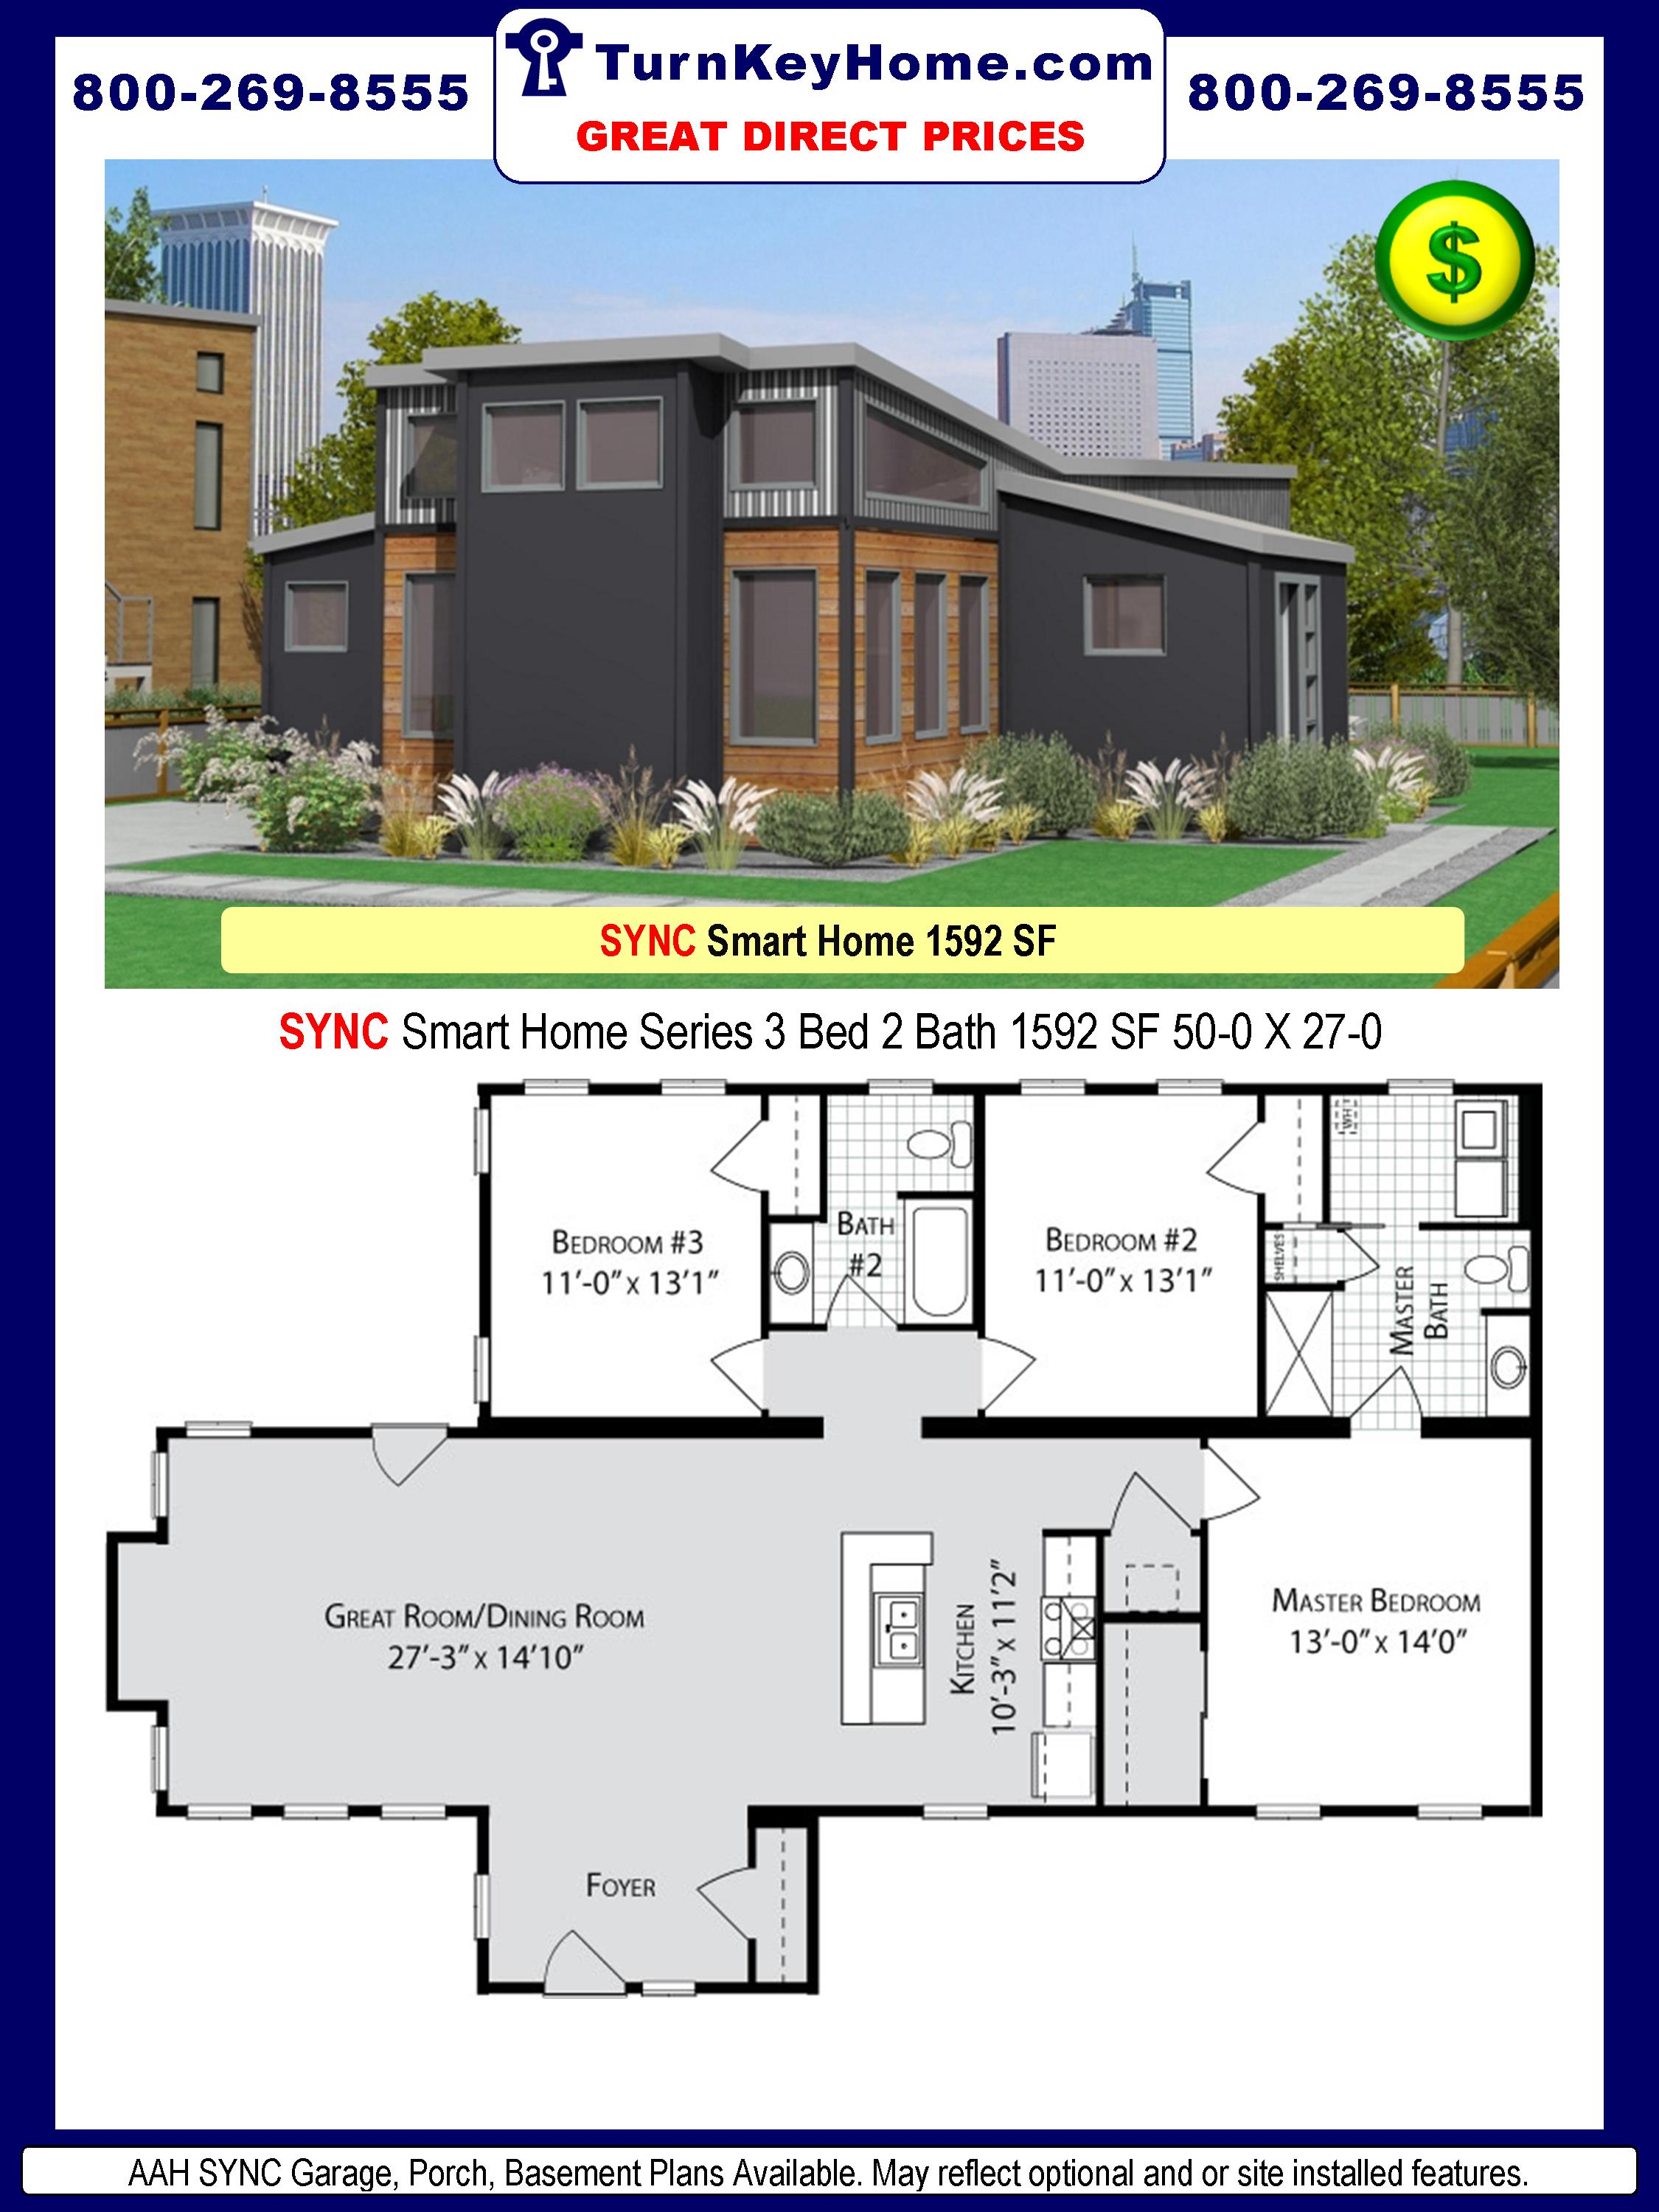 modular home designs and prices. SYNC  3 Bed 2 Bath SMART HOME PLAN 1592 SF ALL AMERICAN HOMES Series DIRECT PRICE Urban City Modular Home Prices FROM All American Homes